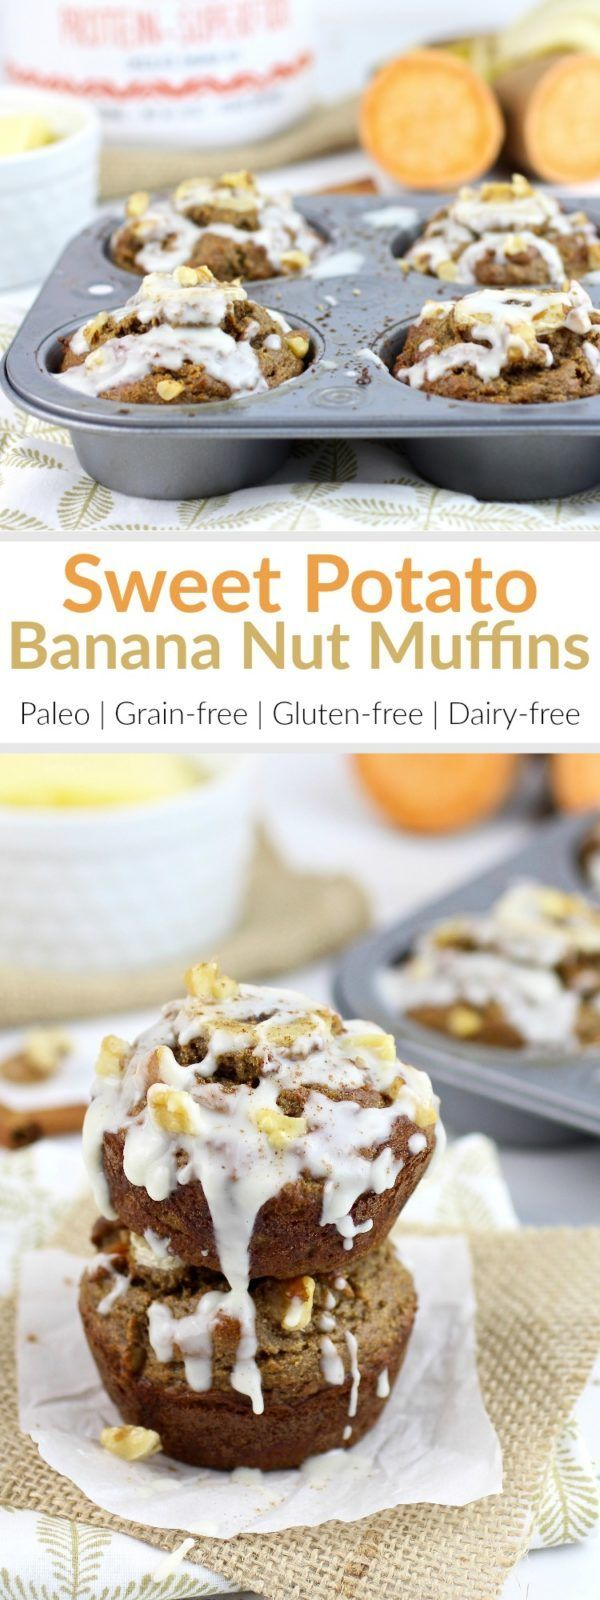 Leftover sweet potatoes and ripe bananas come together to create these perfectly-textured, high-protein, Paleo-friendly, Grain-free Sweet Potato Banana Nut Muffins | therealfoodrds.com